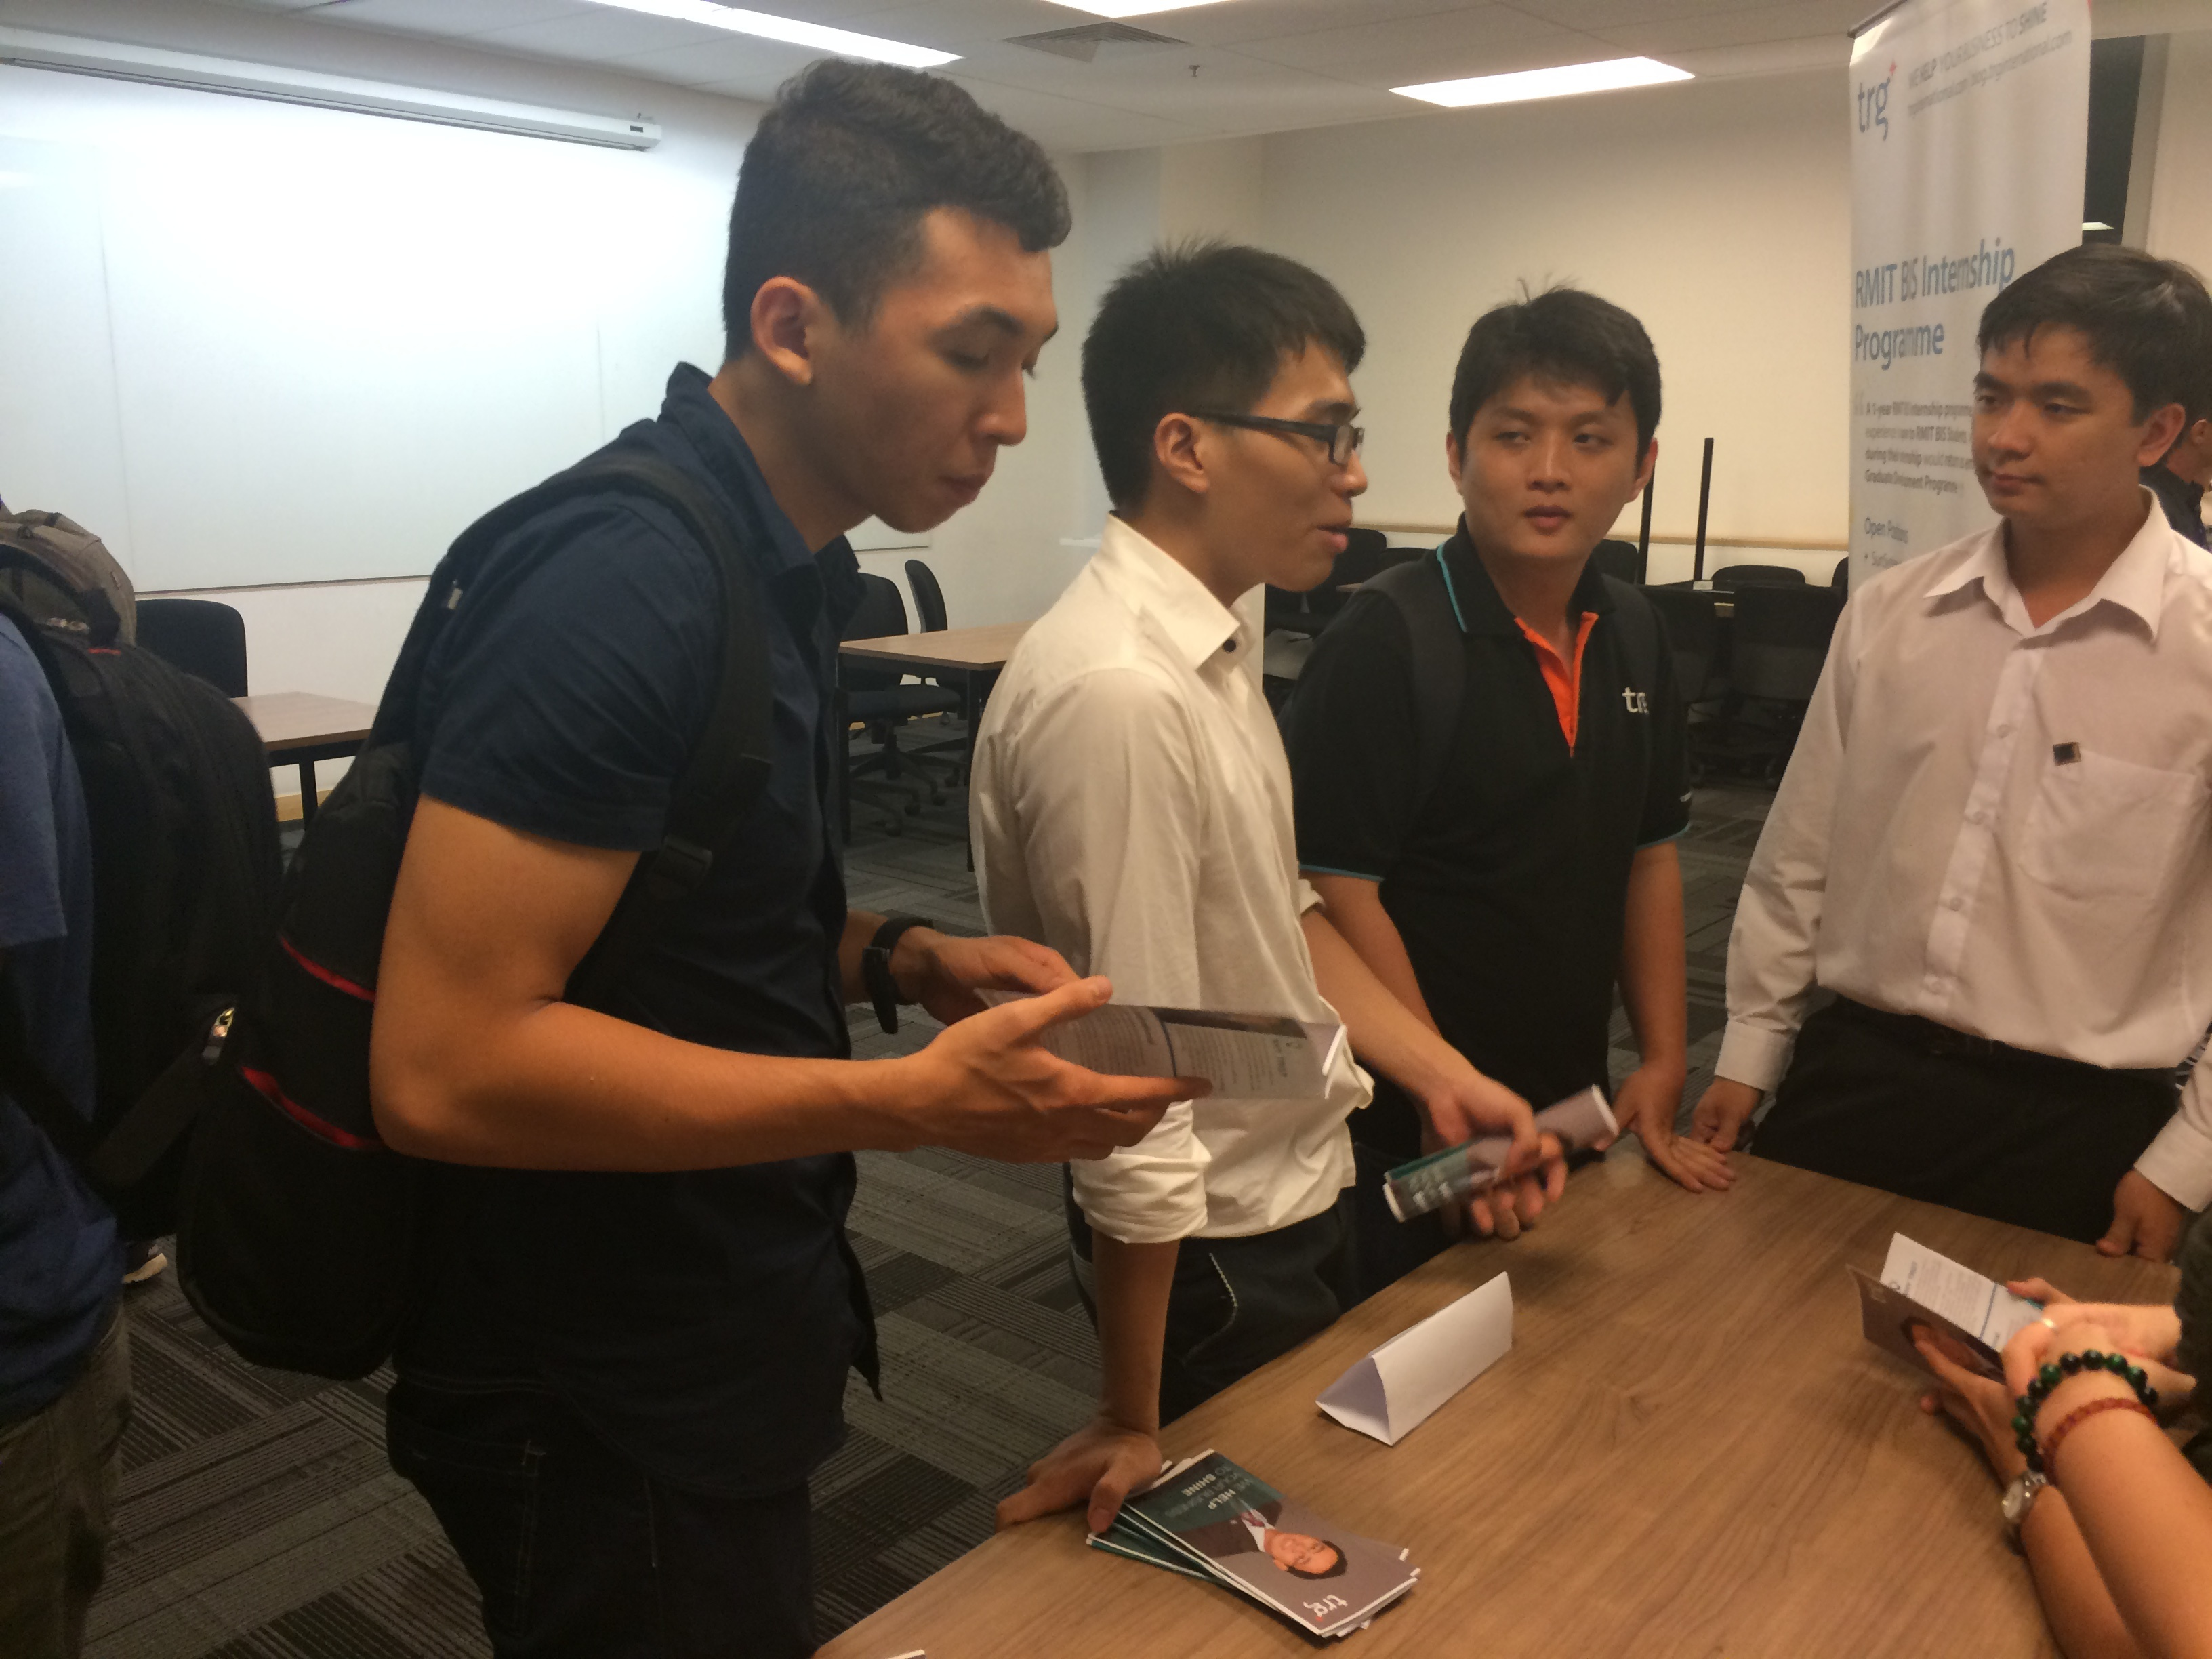 TRG-ERP-consultant-was-explaining-about-BIS-program-and-career-path-at-TRG